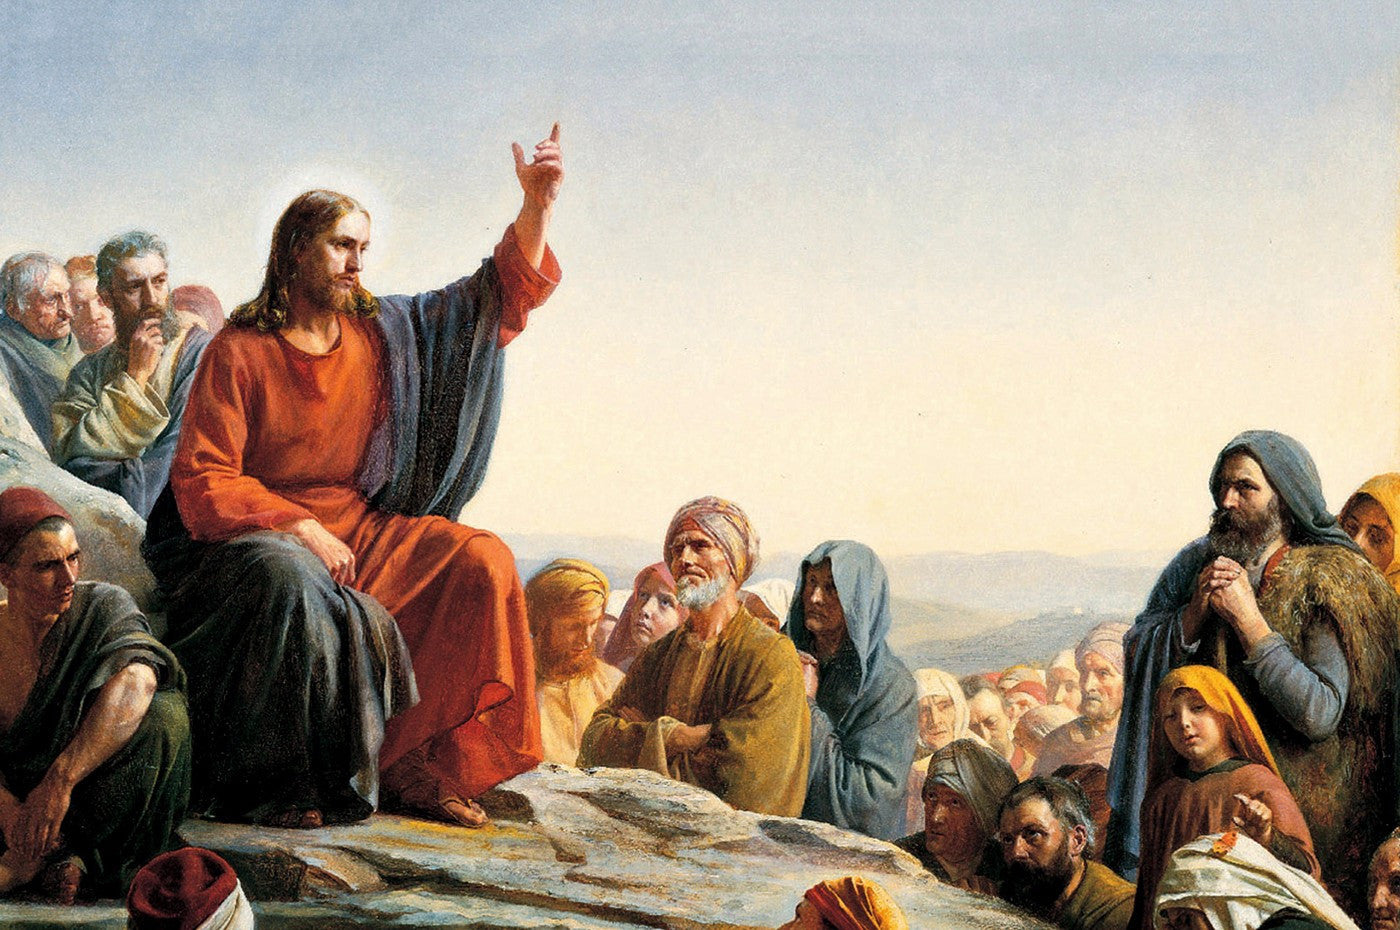 Jesus Giving Sermon - Framed Prints by Sina Irani | Buy Posters ...